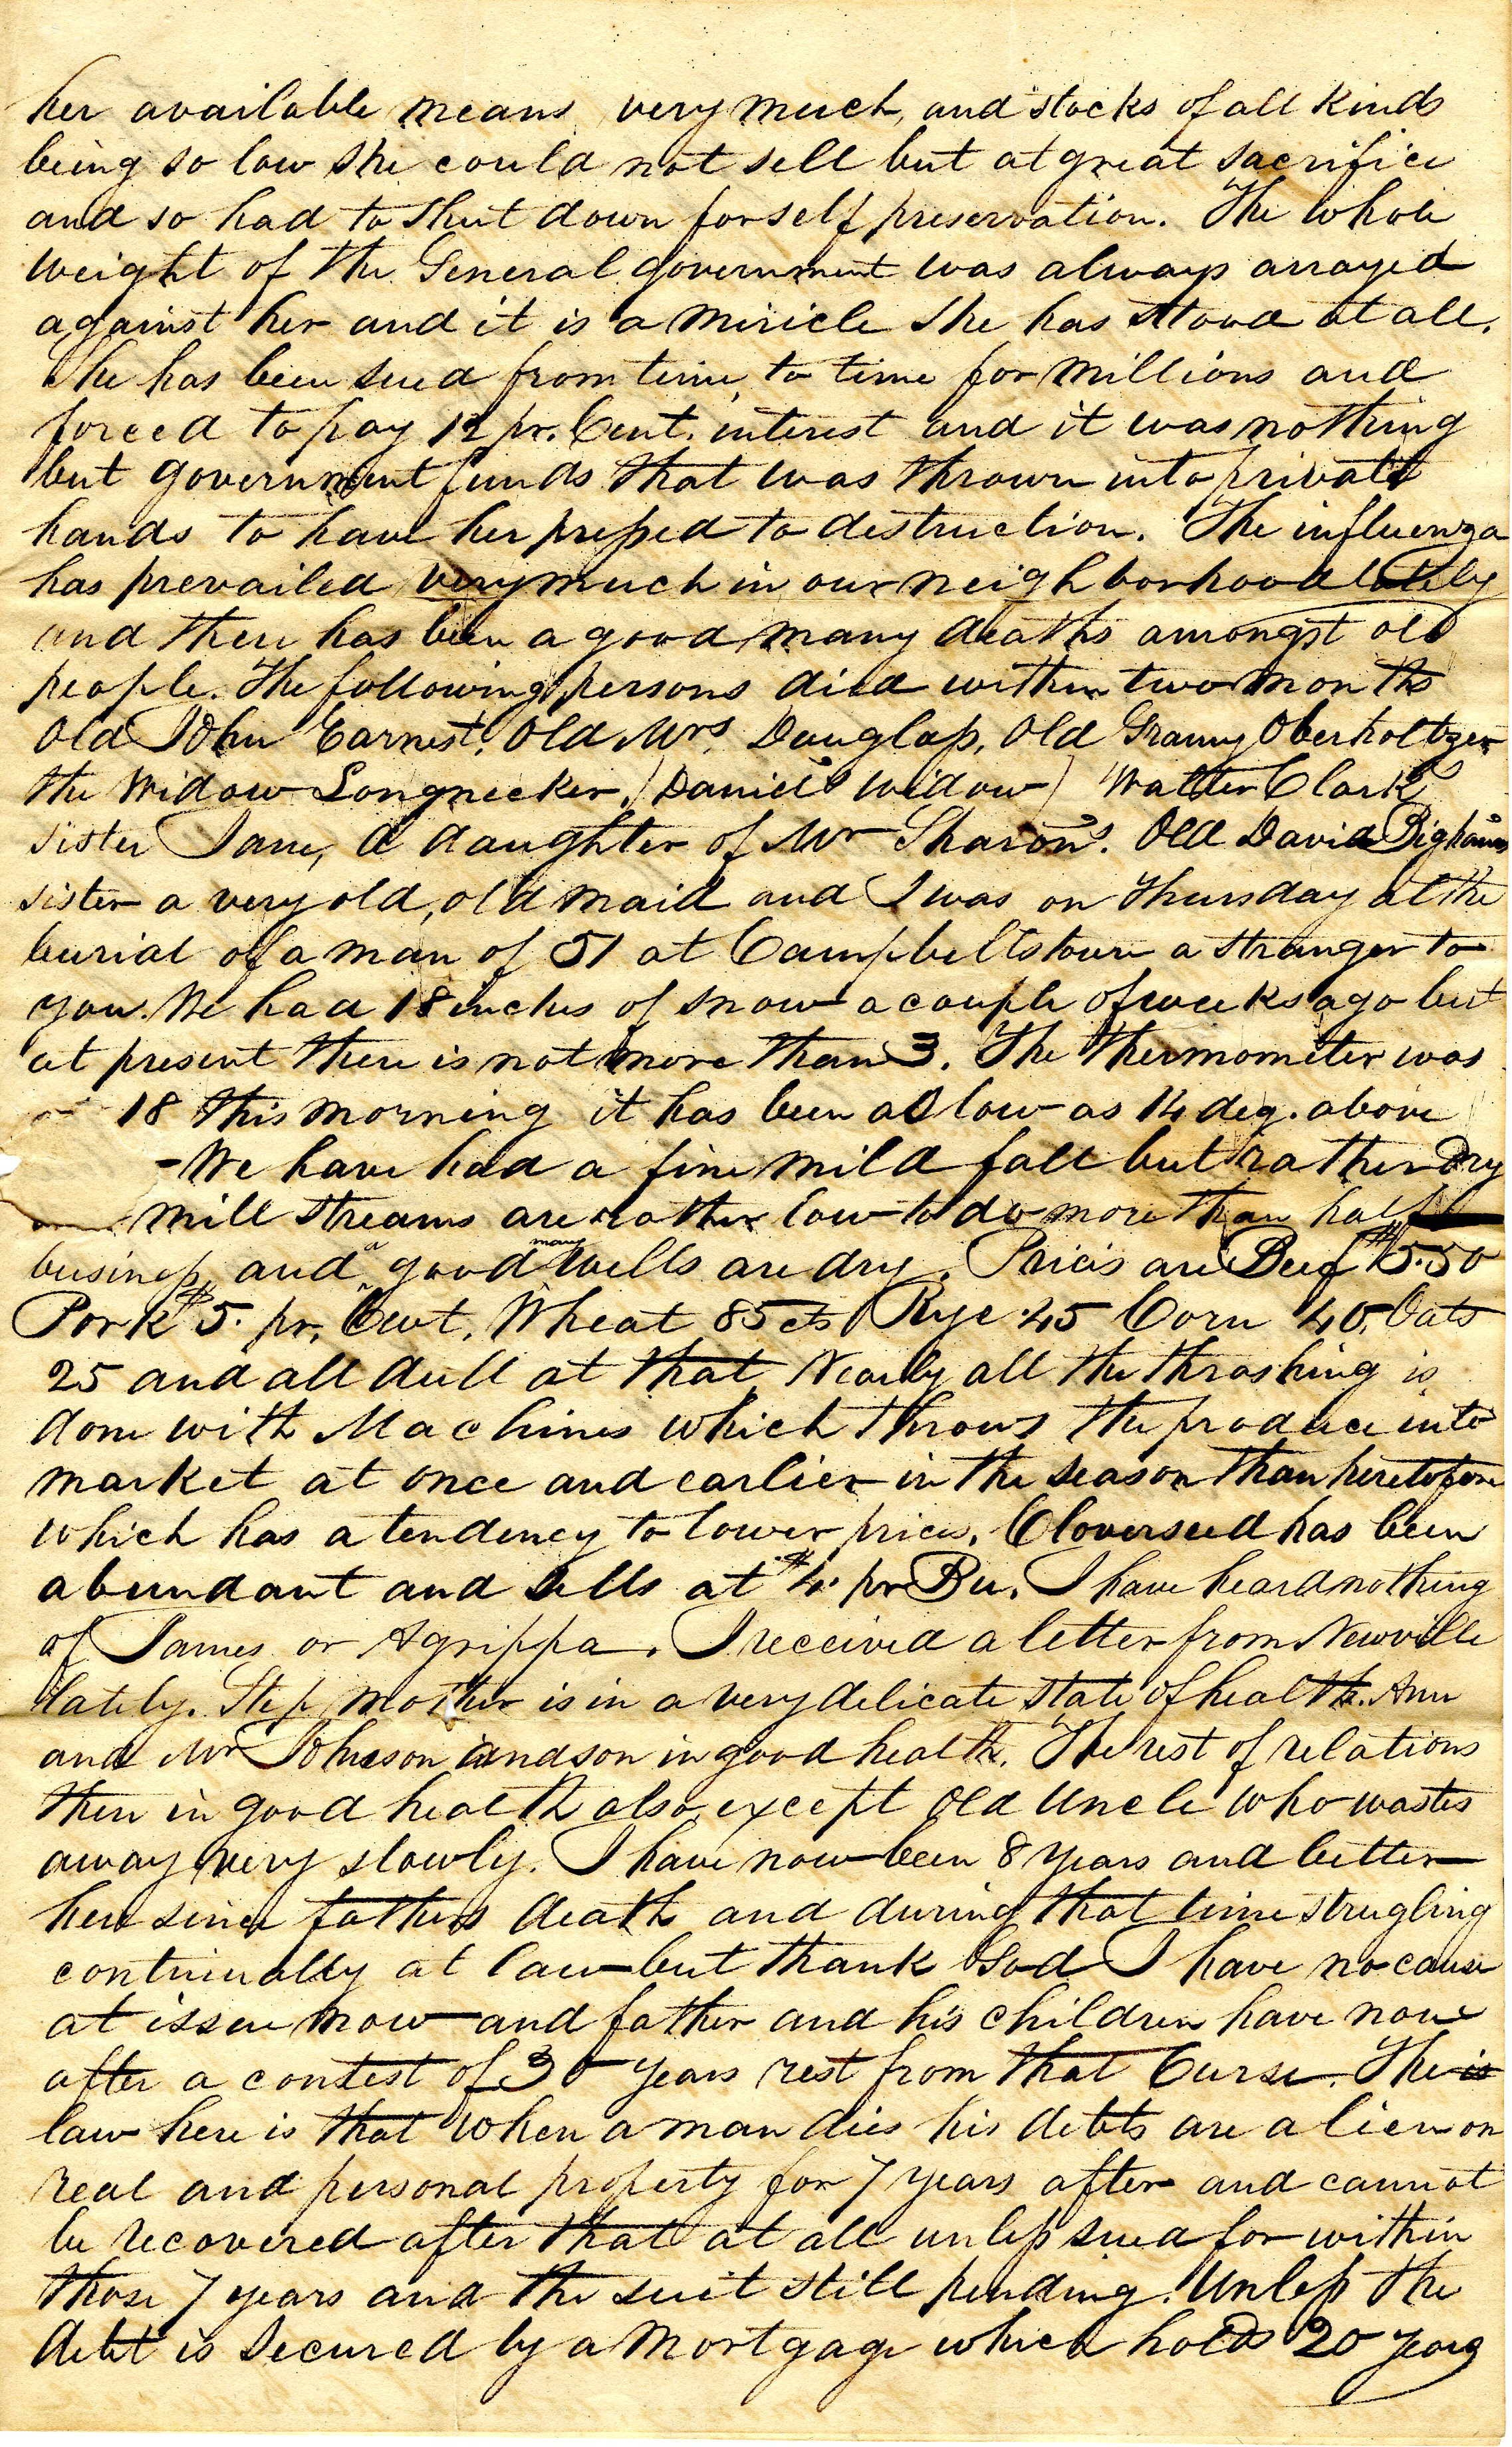 Letter From William Geddes to John Geddes, December 19, 1840 image